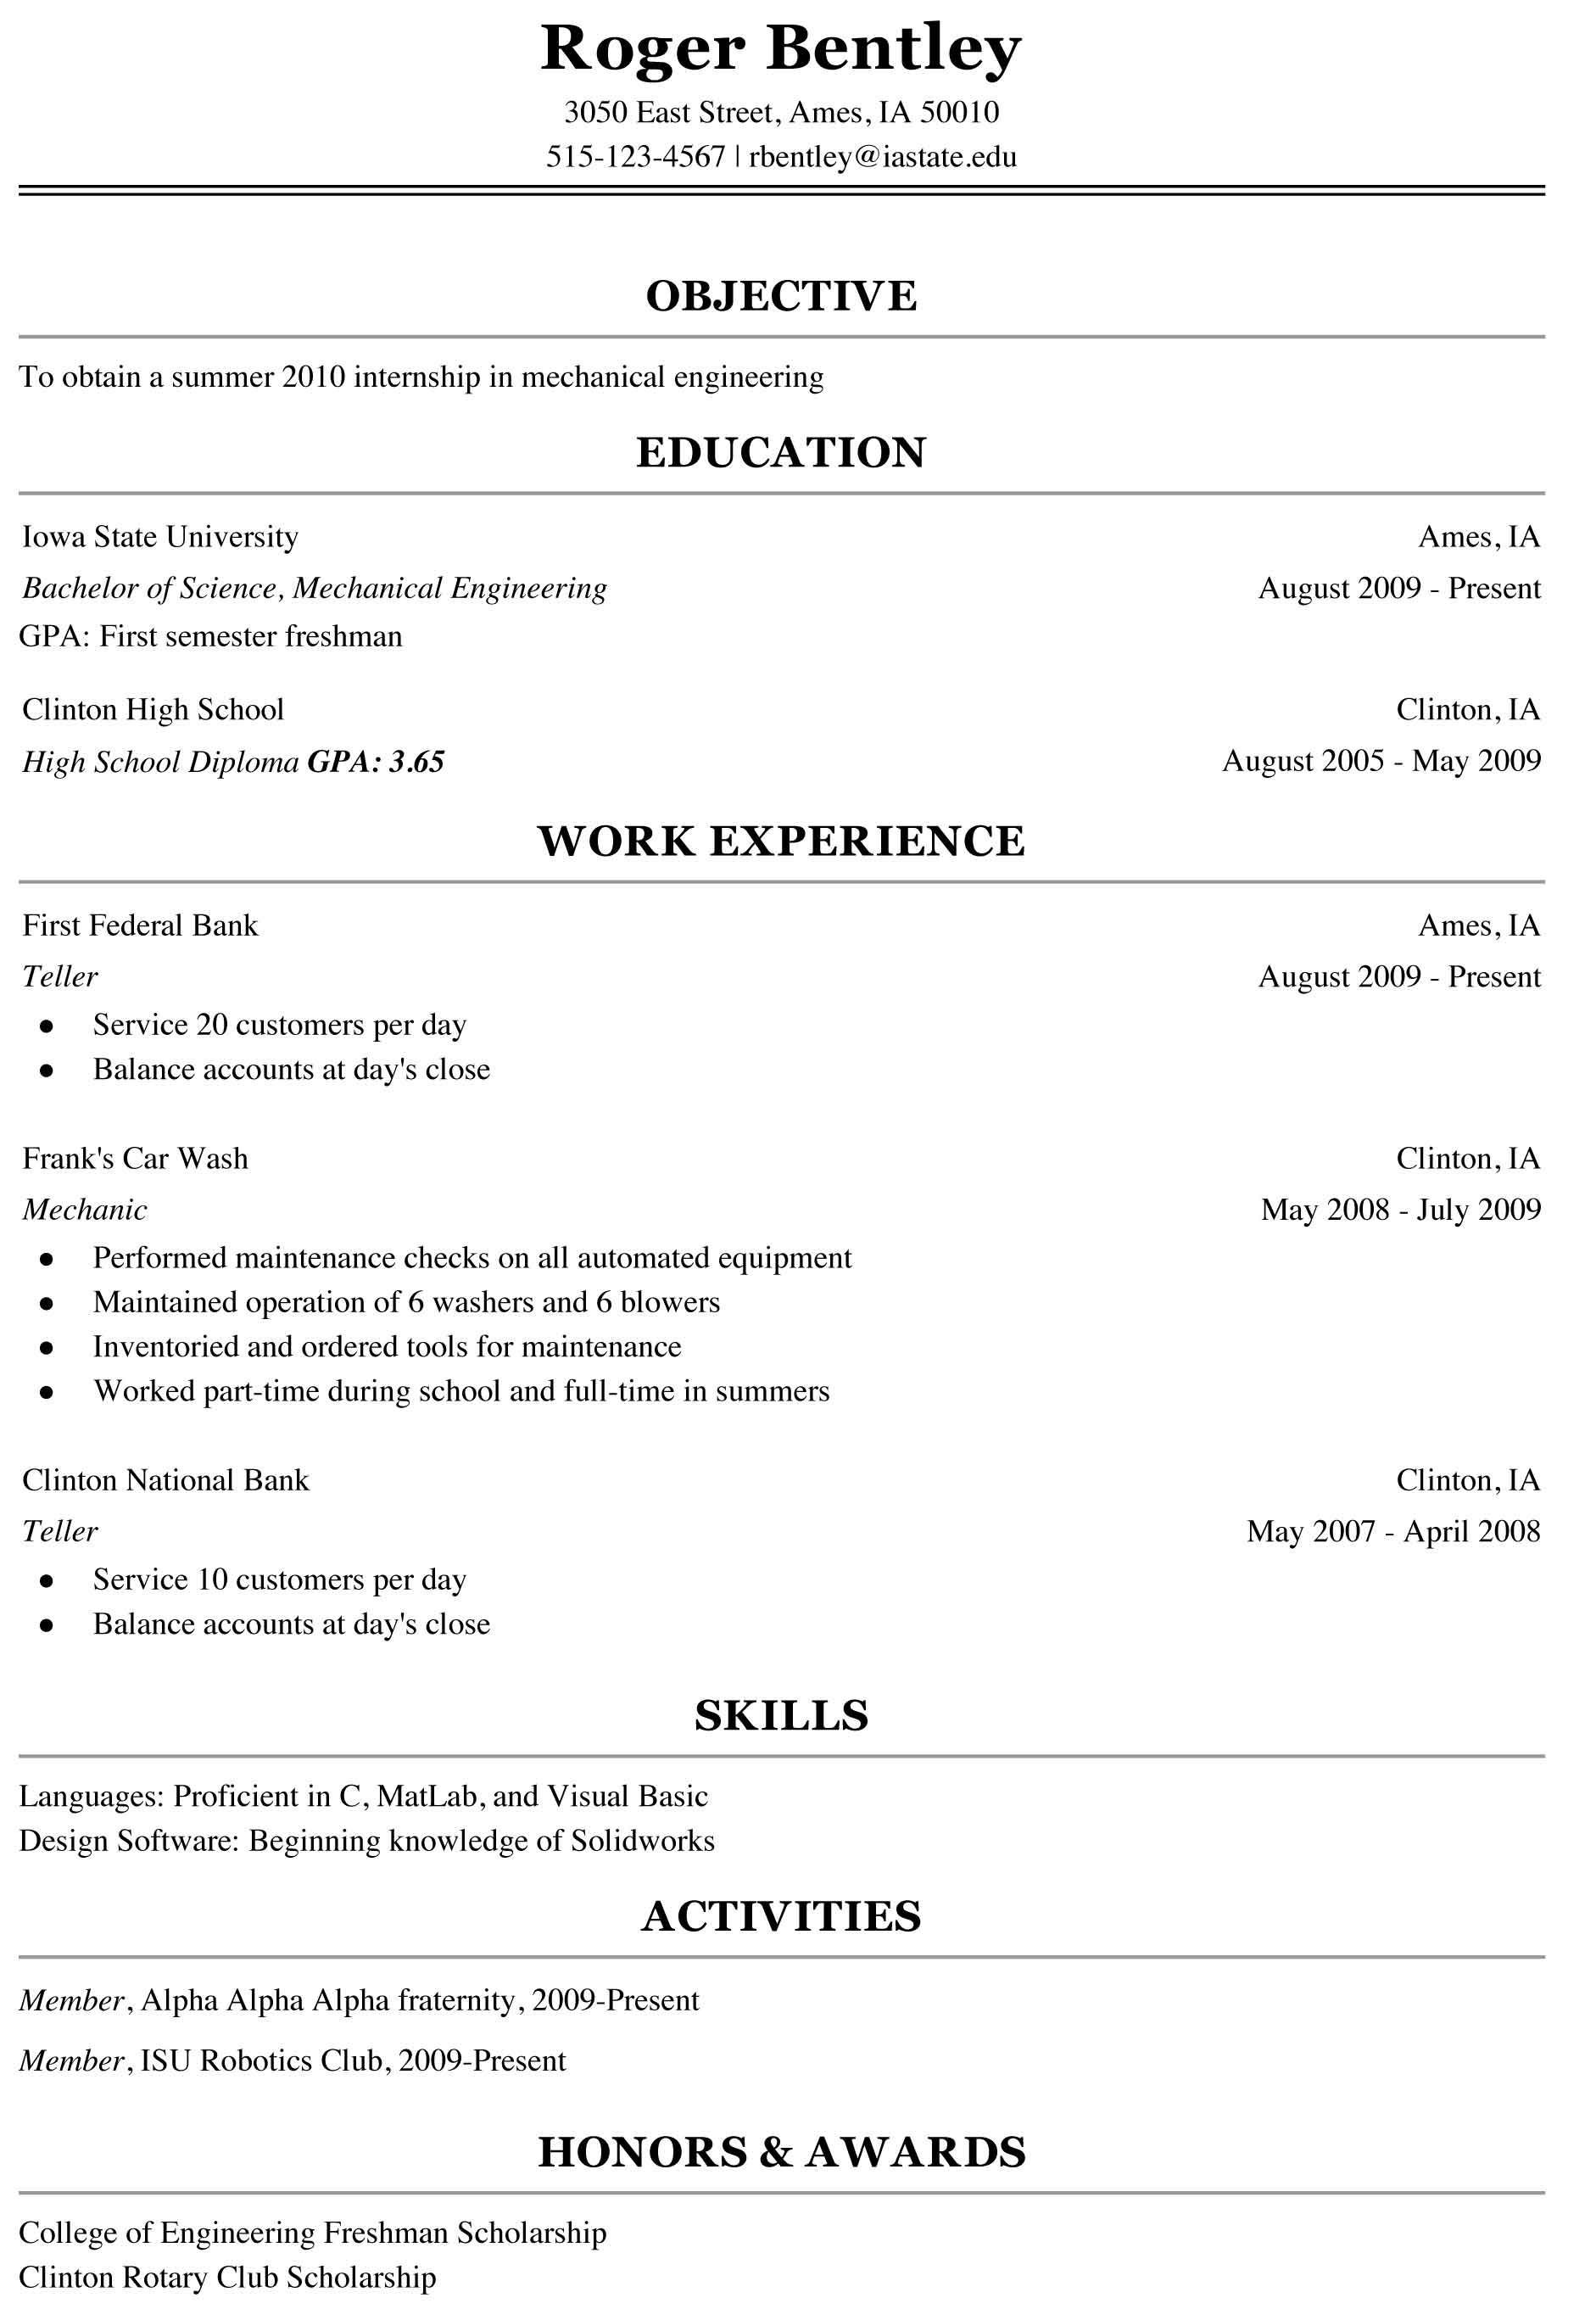 012 College Student Resume Template Remarkable Ideas Reddit Within College Student Resume Template Microsoft Word In 2020 College Resume Template Student Resume Template College Resume